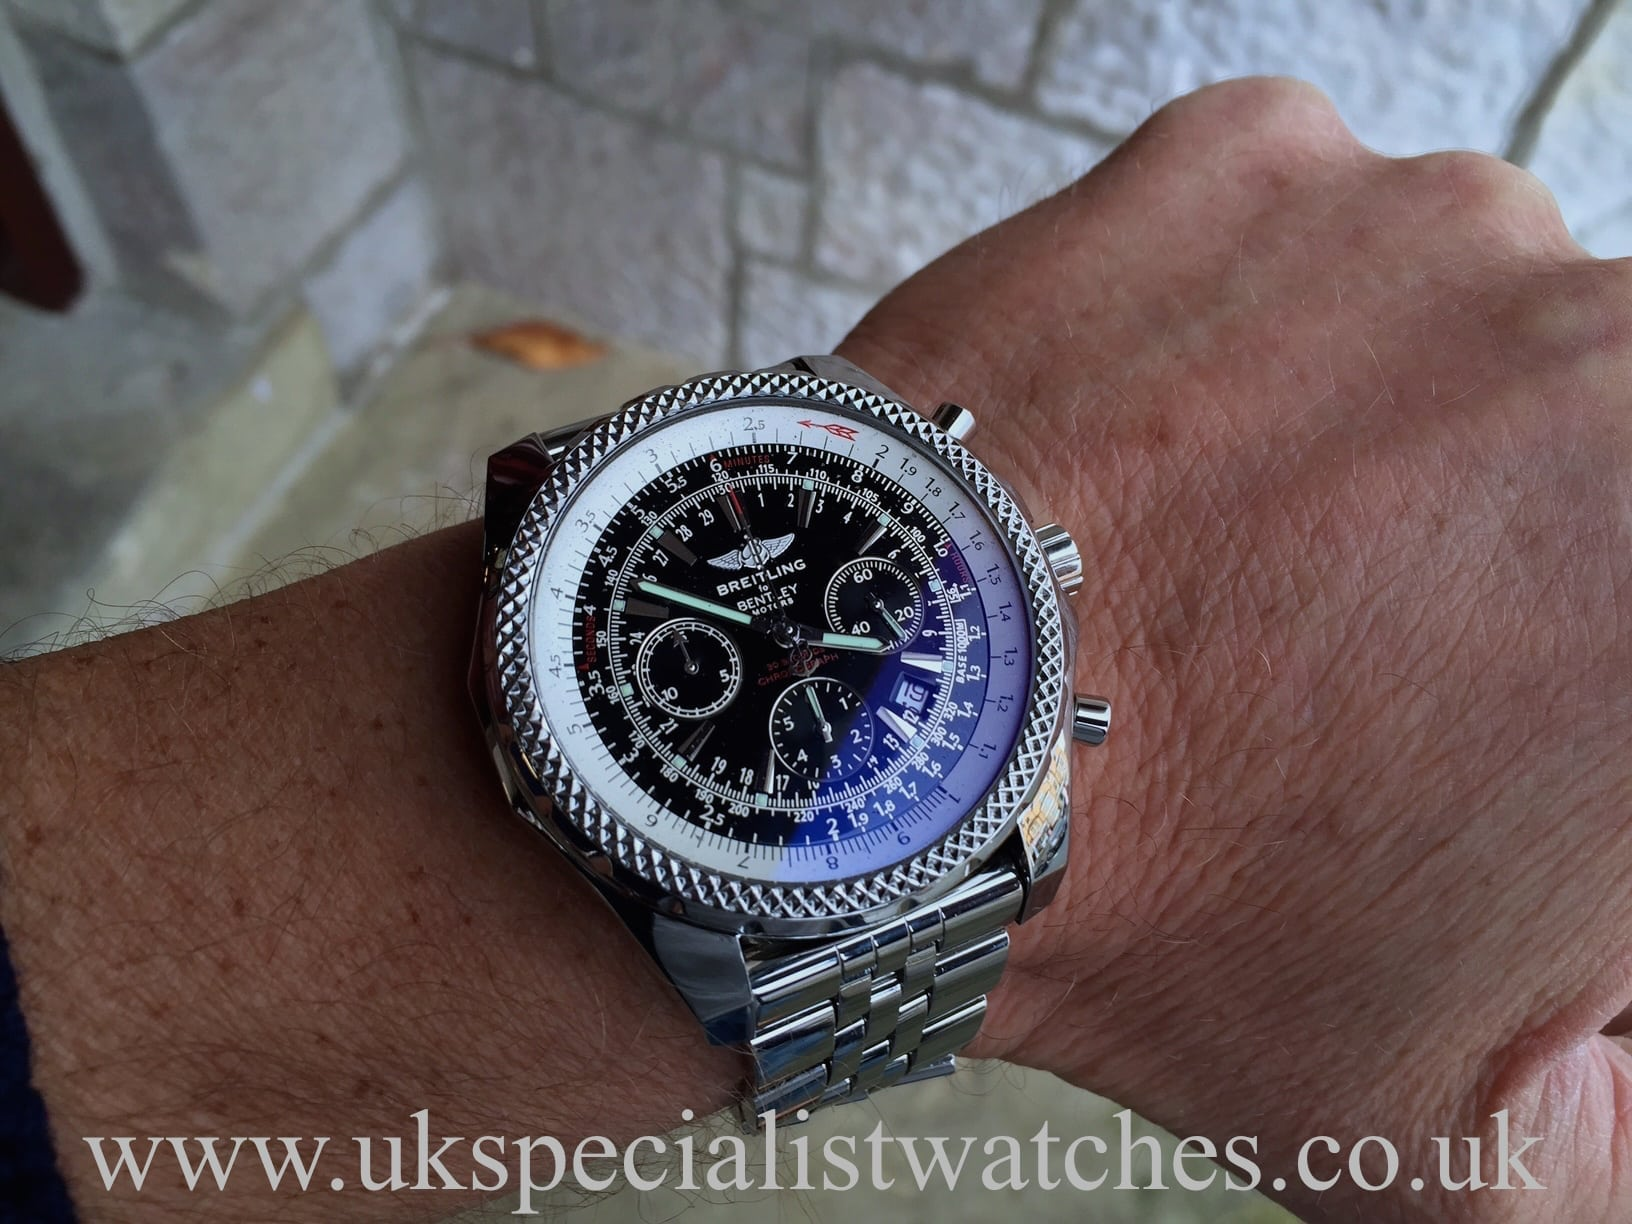 breitling chronograph s davidsw motors special maxresdefault wrist watch today on edition bentley gmt